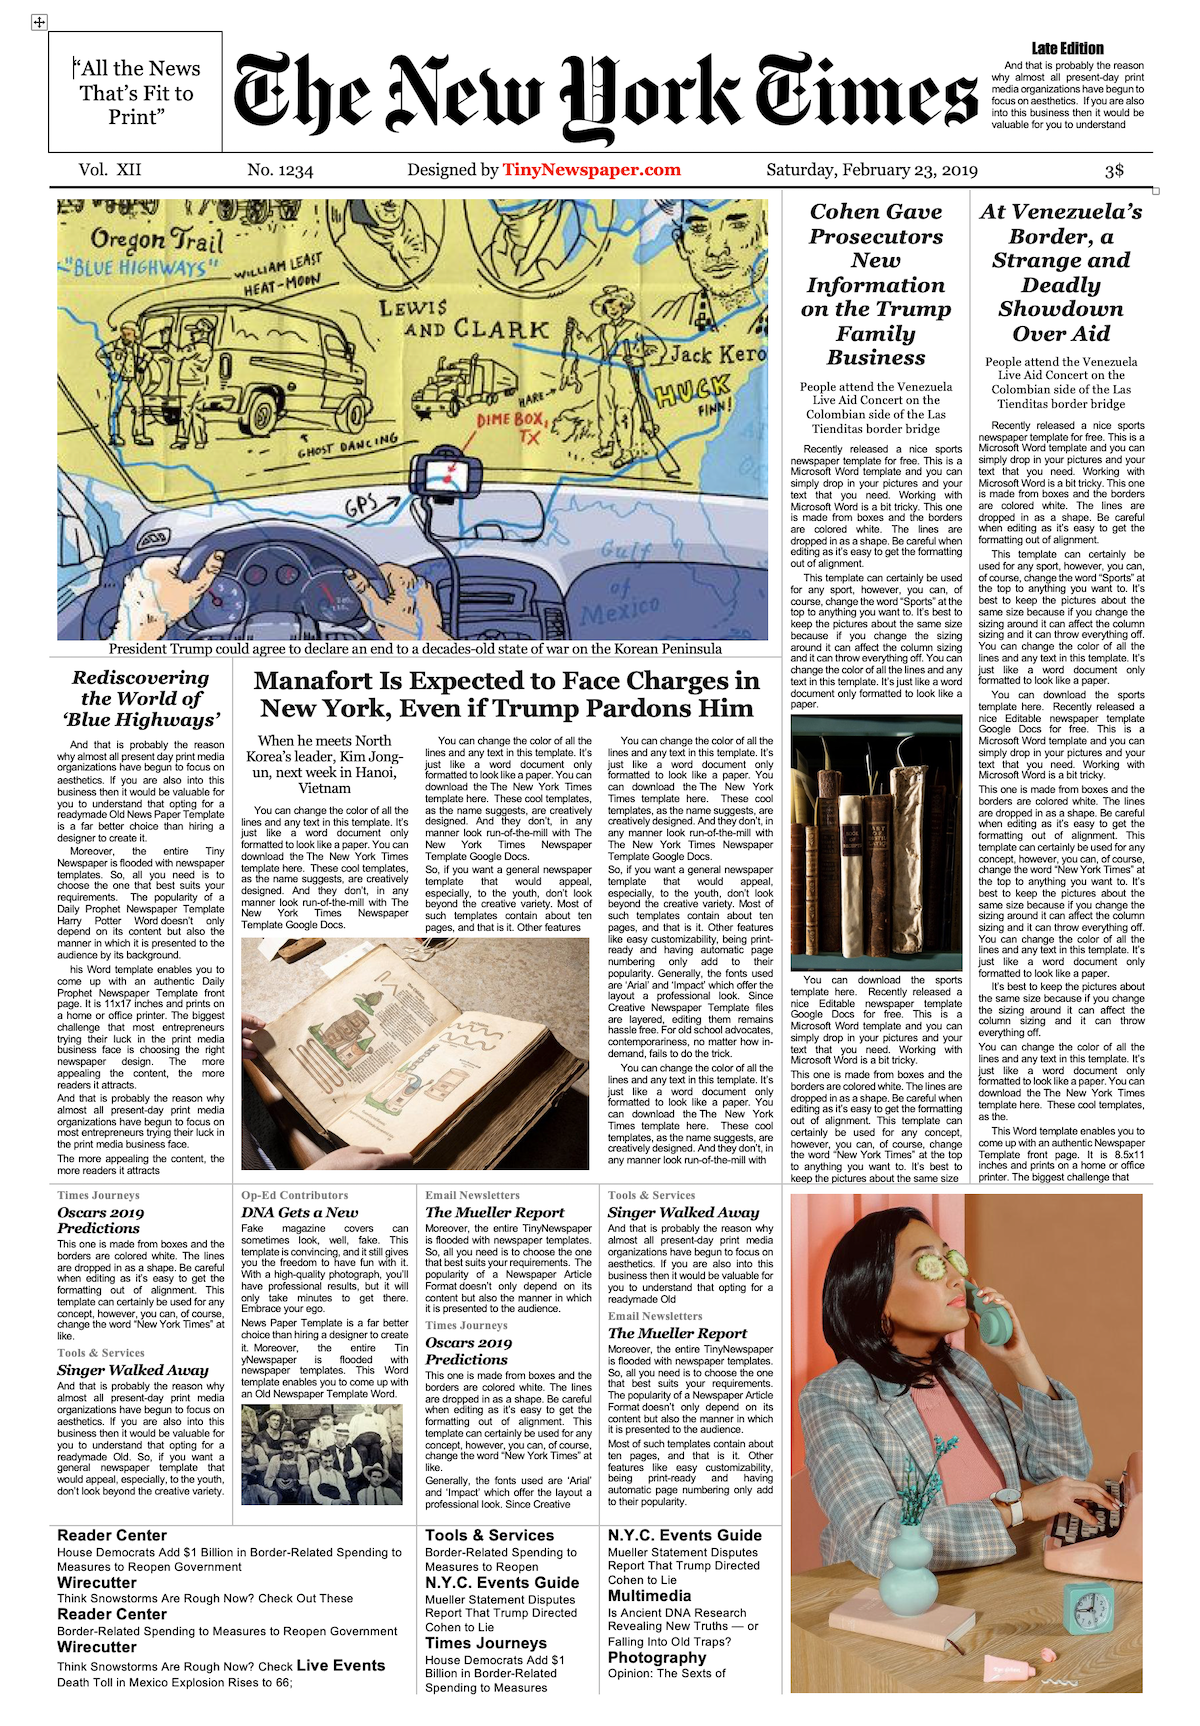 New York Times Newspaper Template Google Docs Download Newspaper Template Google Docs Template Google